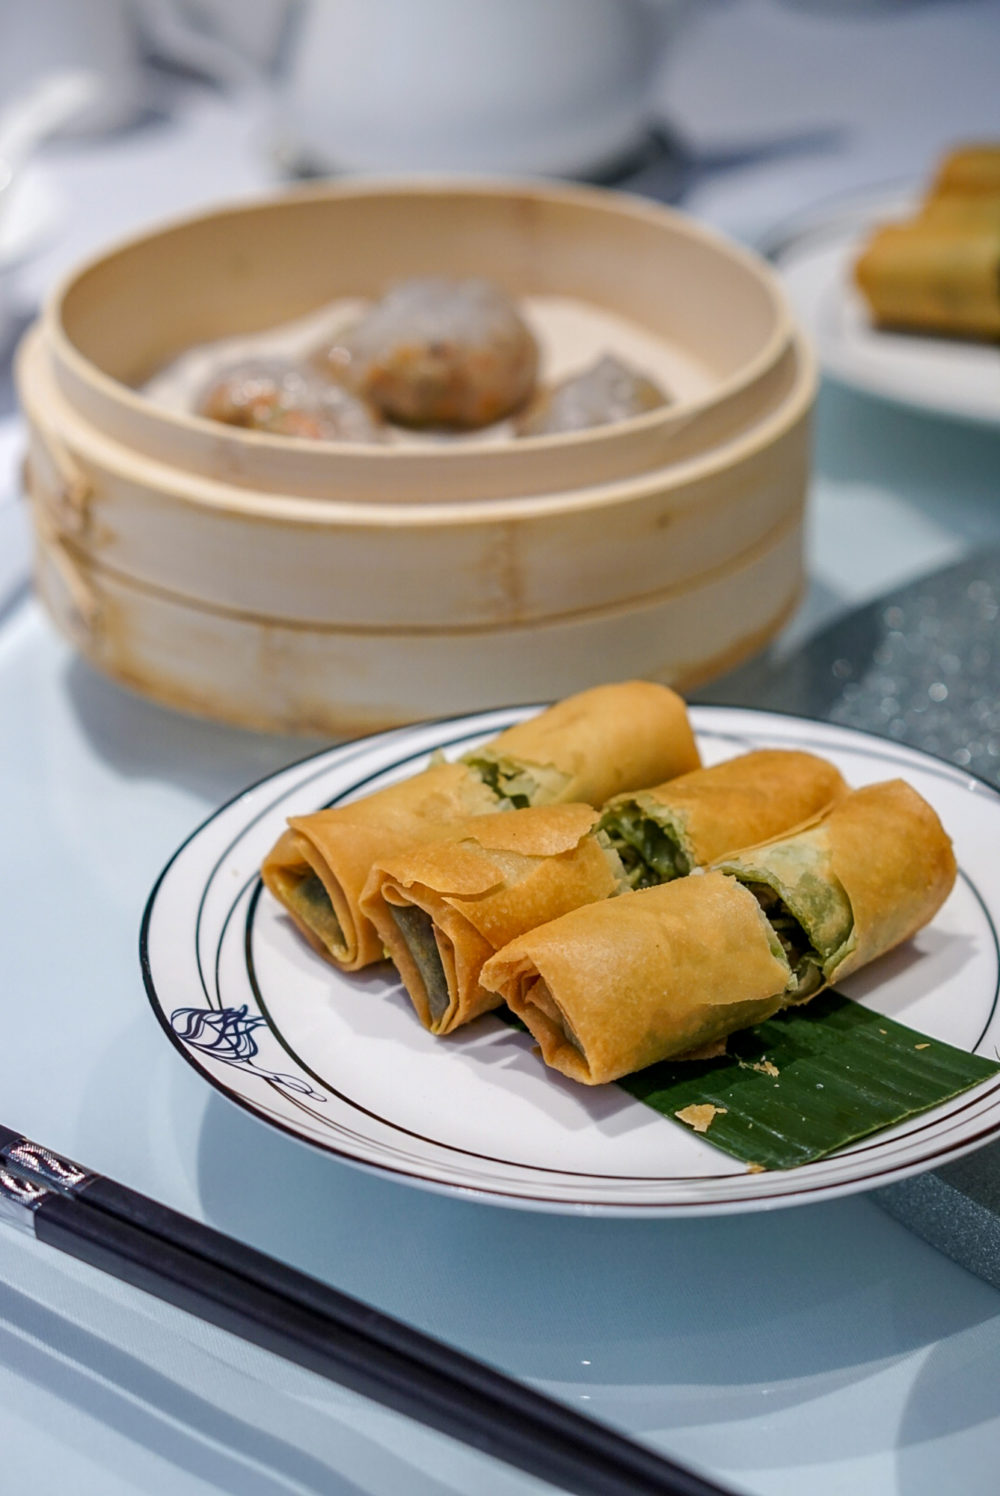 Forbidden Duck Singapore by Demon Chef Alvin Leung - Pesto Duck Spring Roll and Steamed Black Truffle & Duck Tongue Dumpling